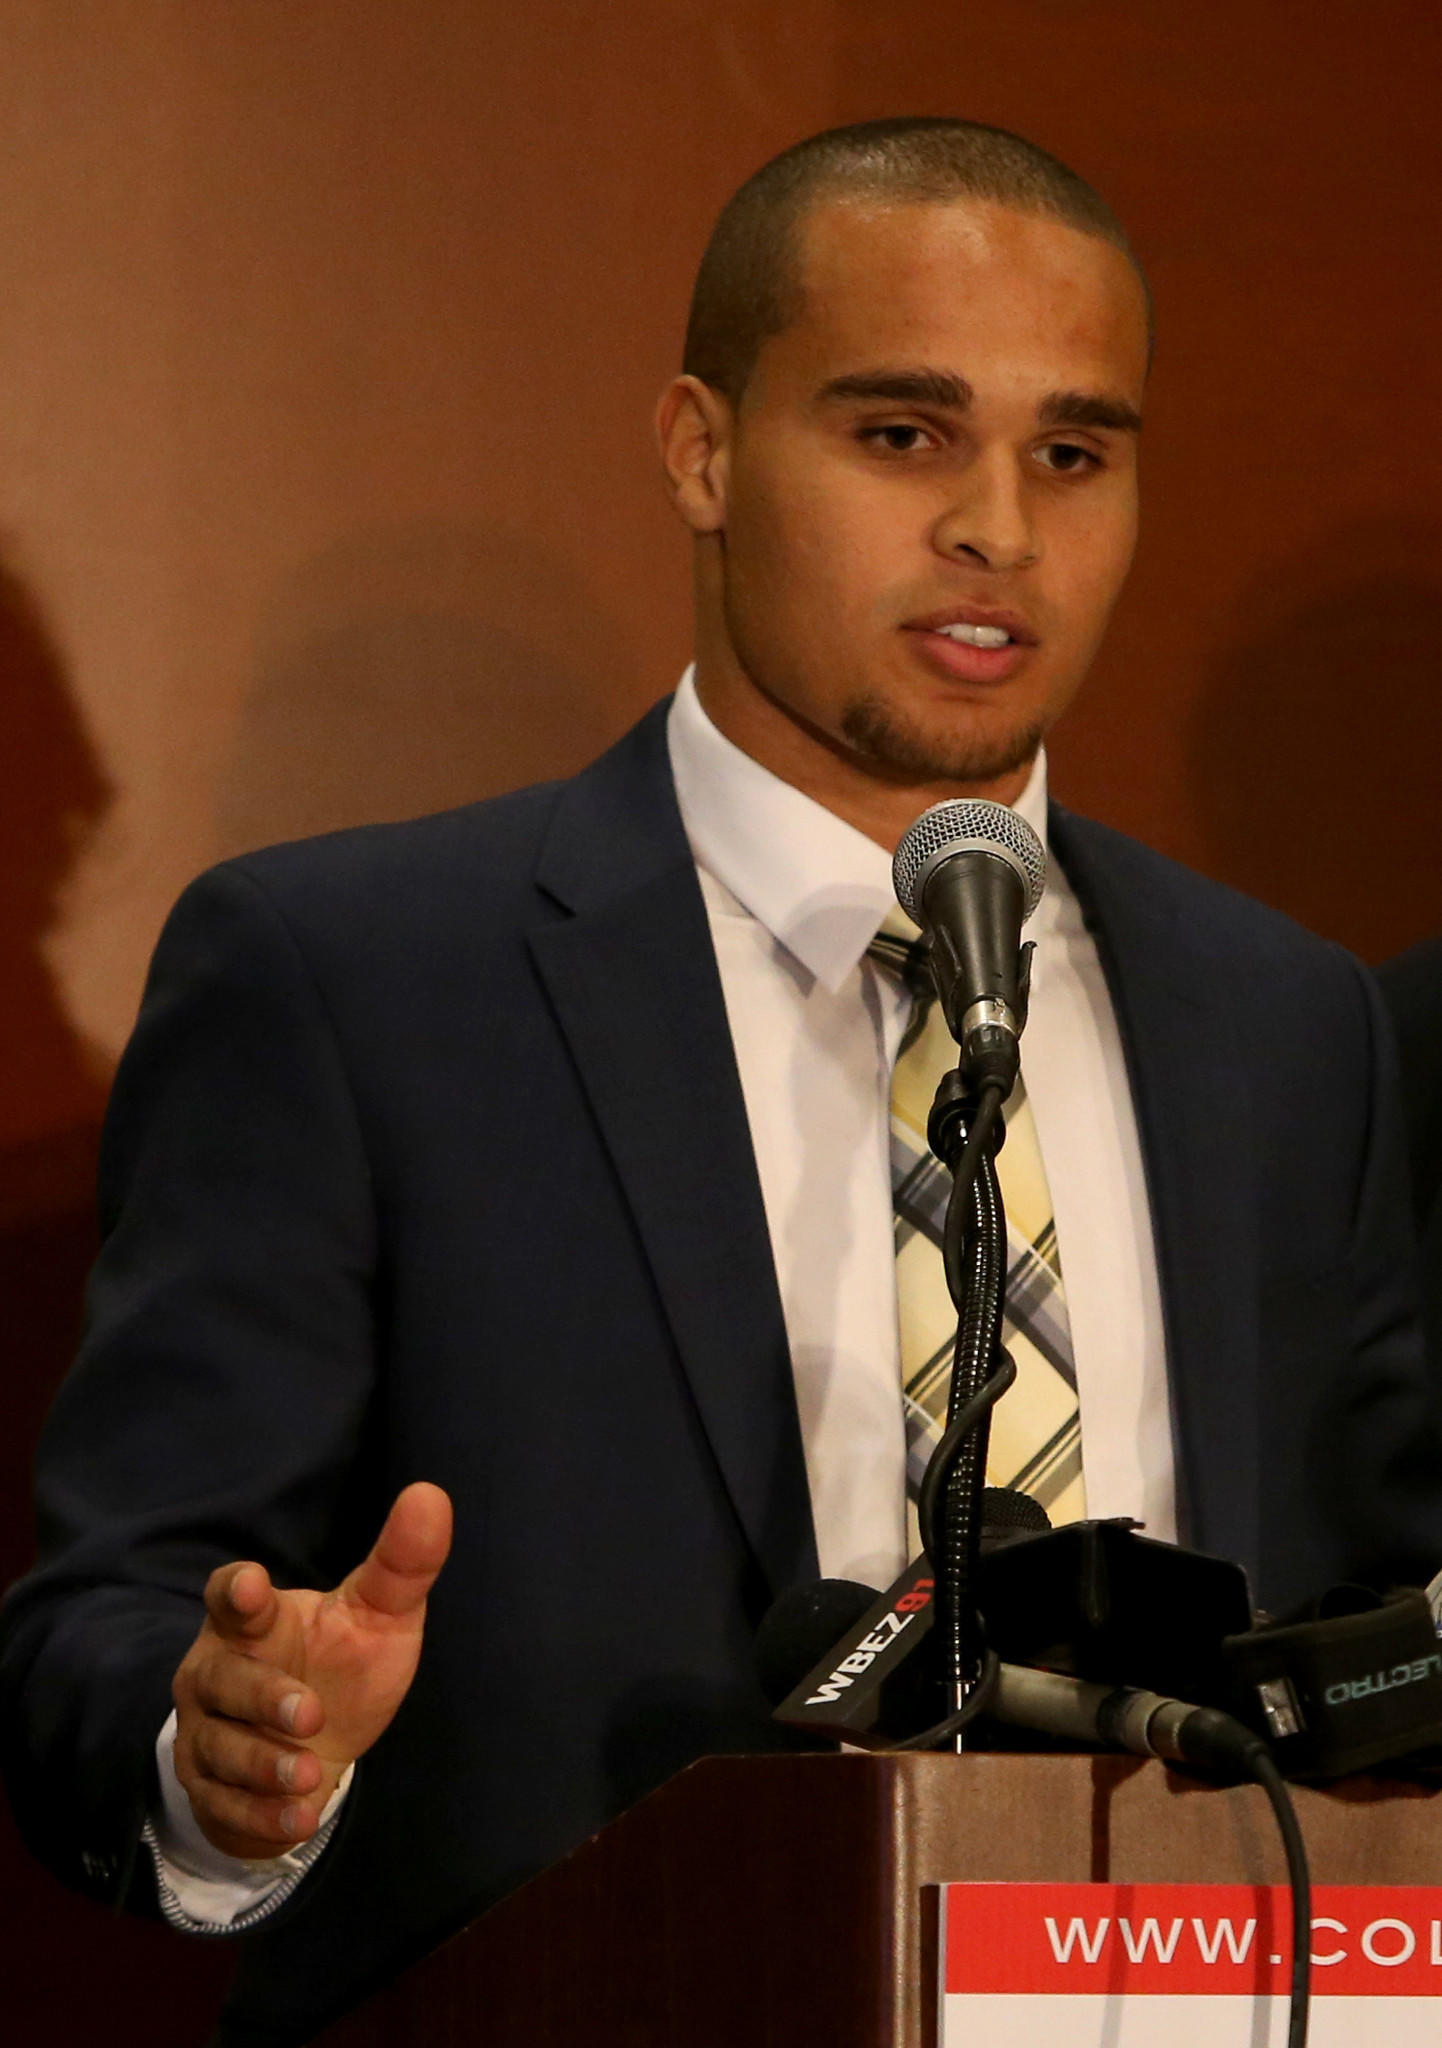 Kain Colter, a star quarterback and receiver who completed his college football career in December, announces that several Northwestern football players wish to join a labor union, during a press conference at the Hyatt Regency in Chicago, Tuesday, Jan. 28, 2014.